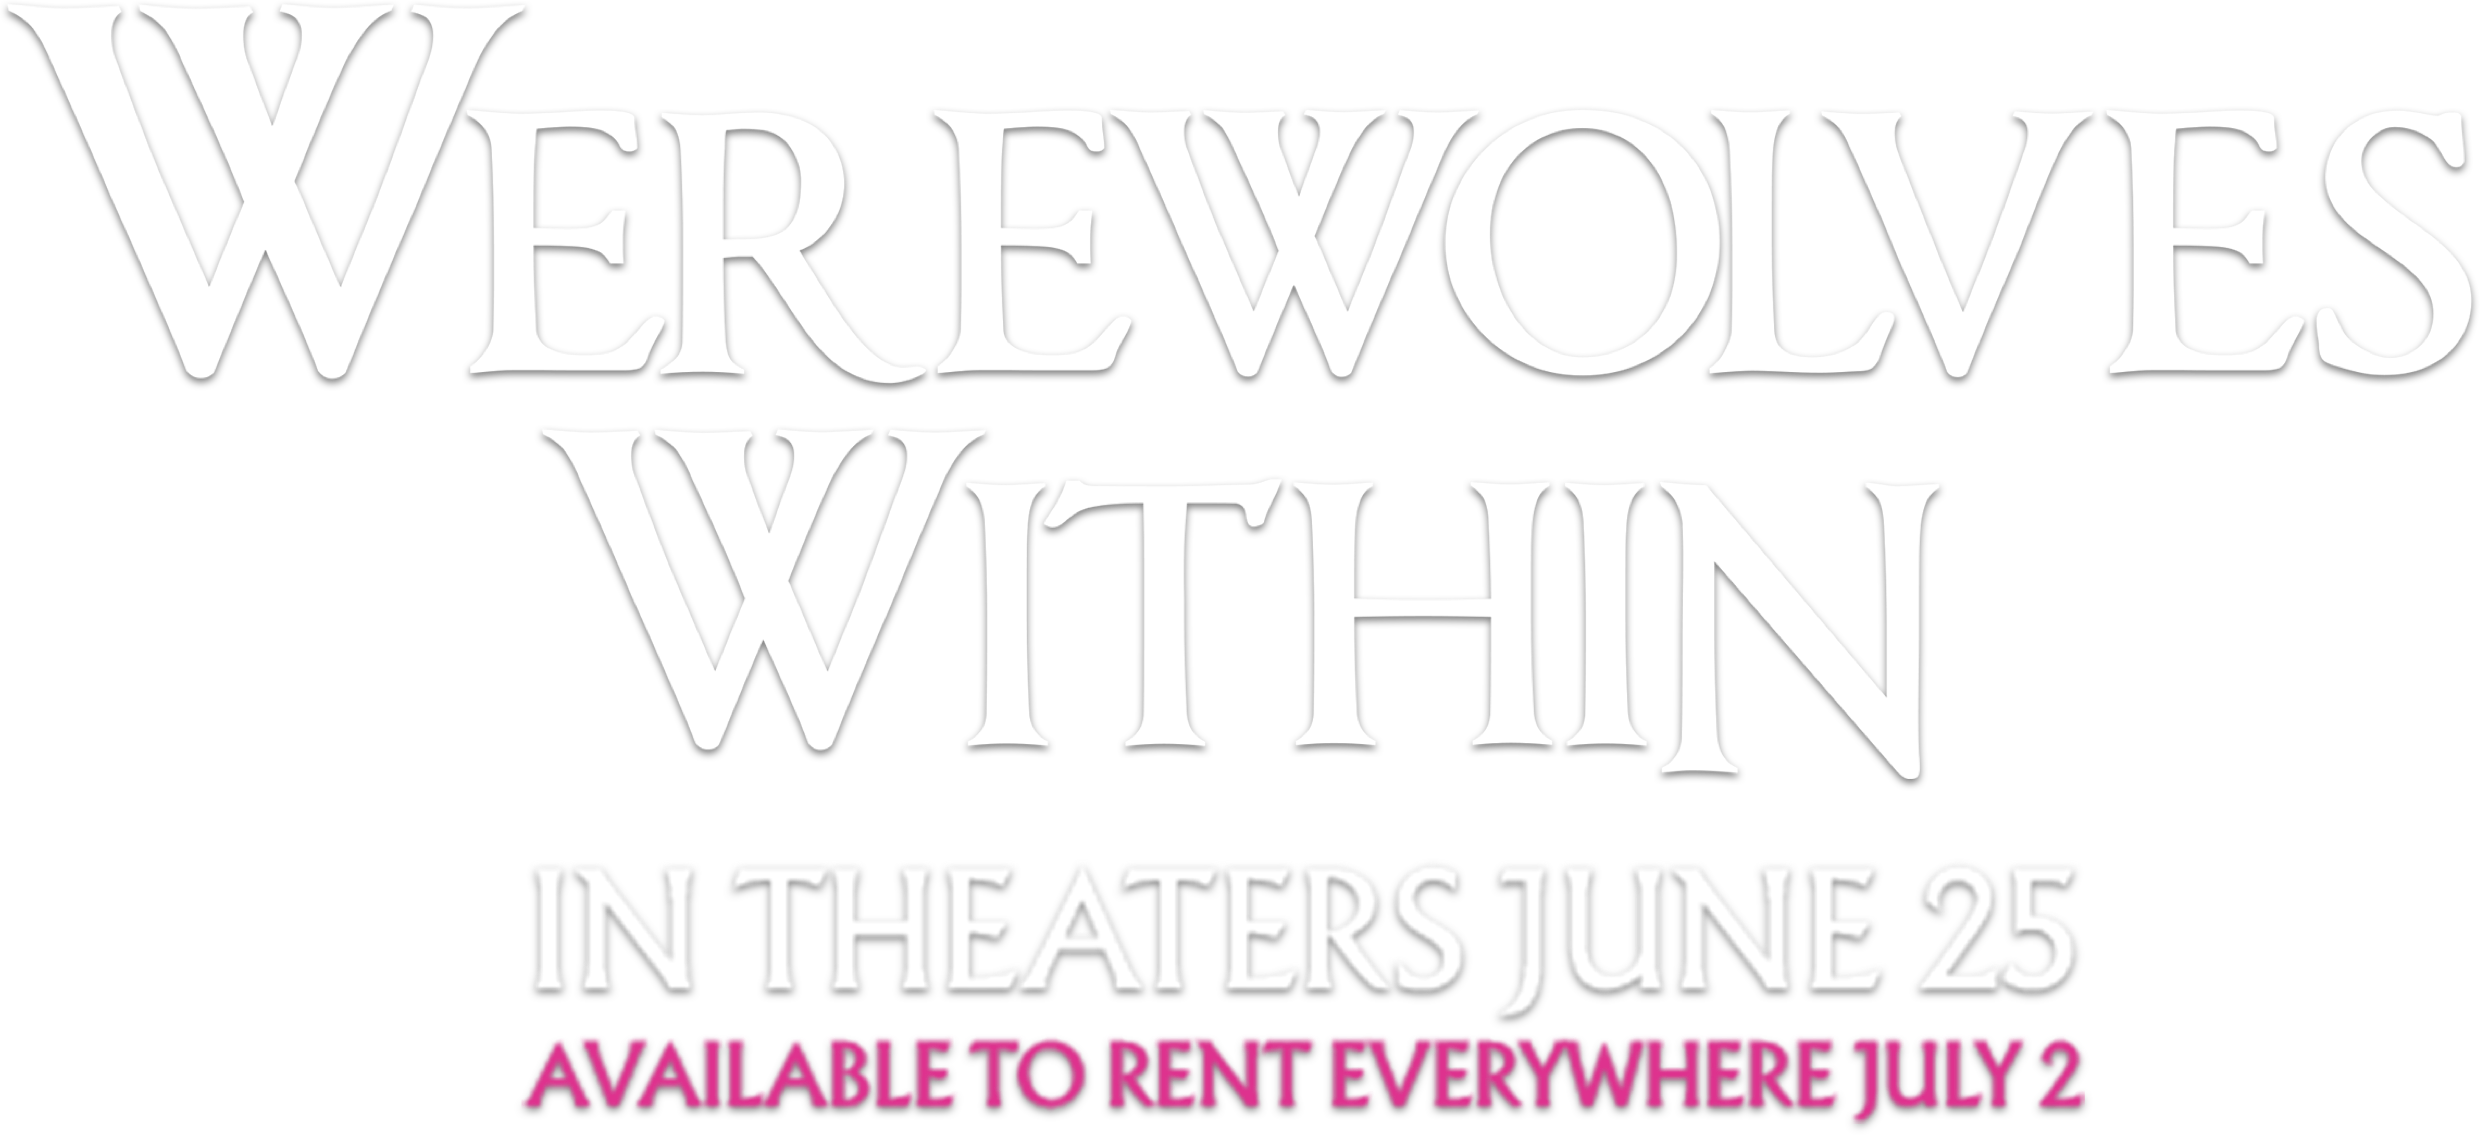 Title or logo for Werewolves Within